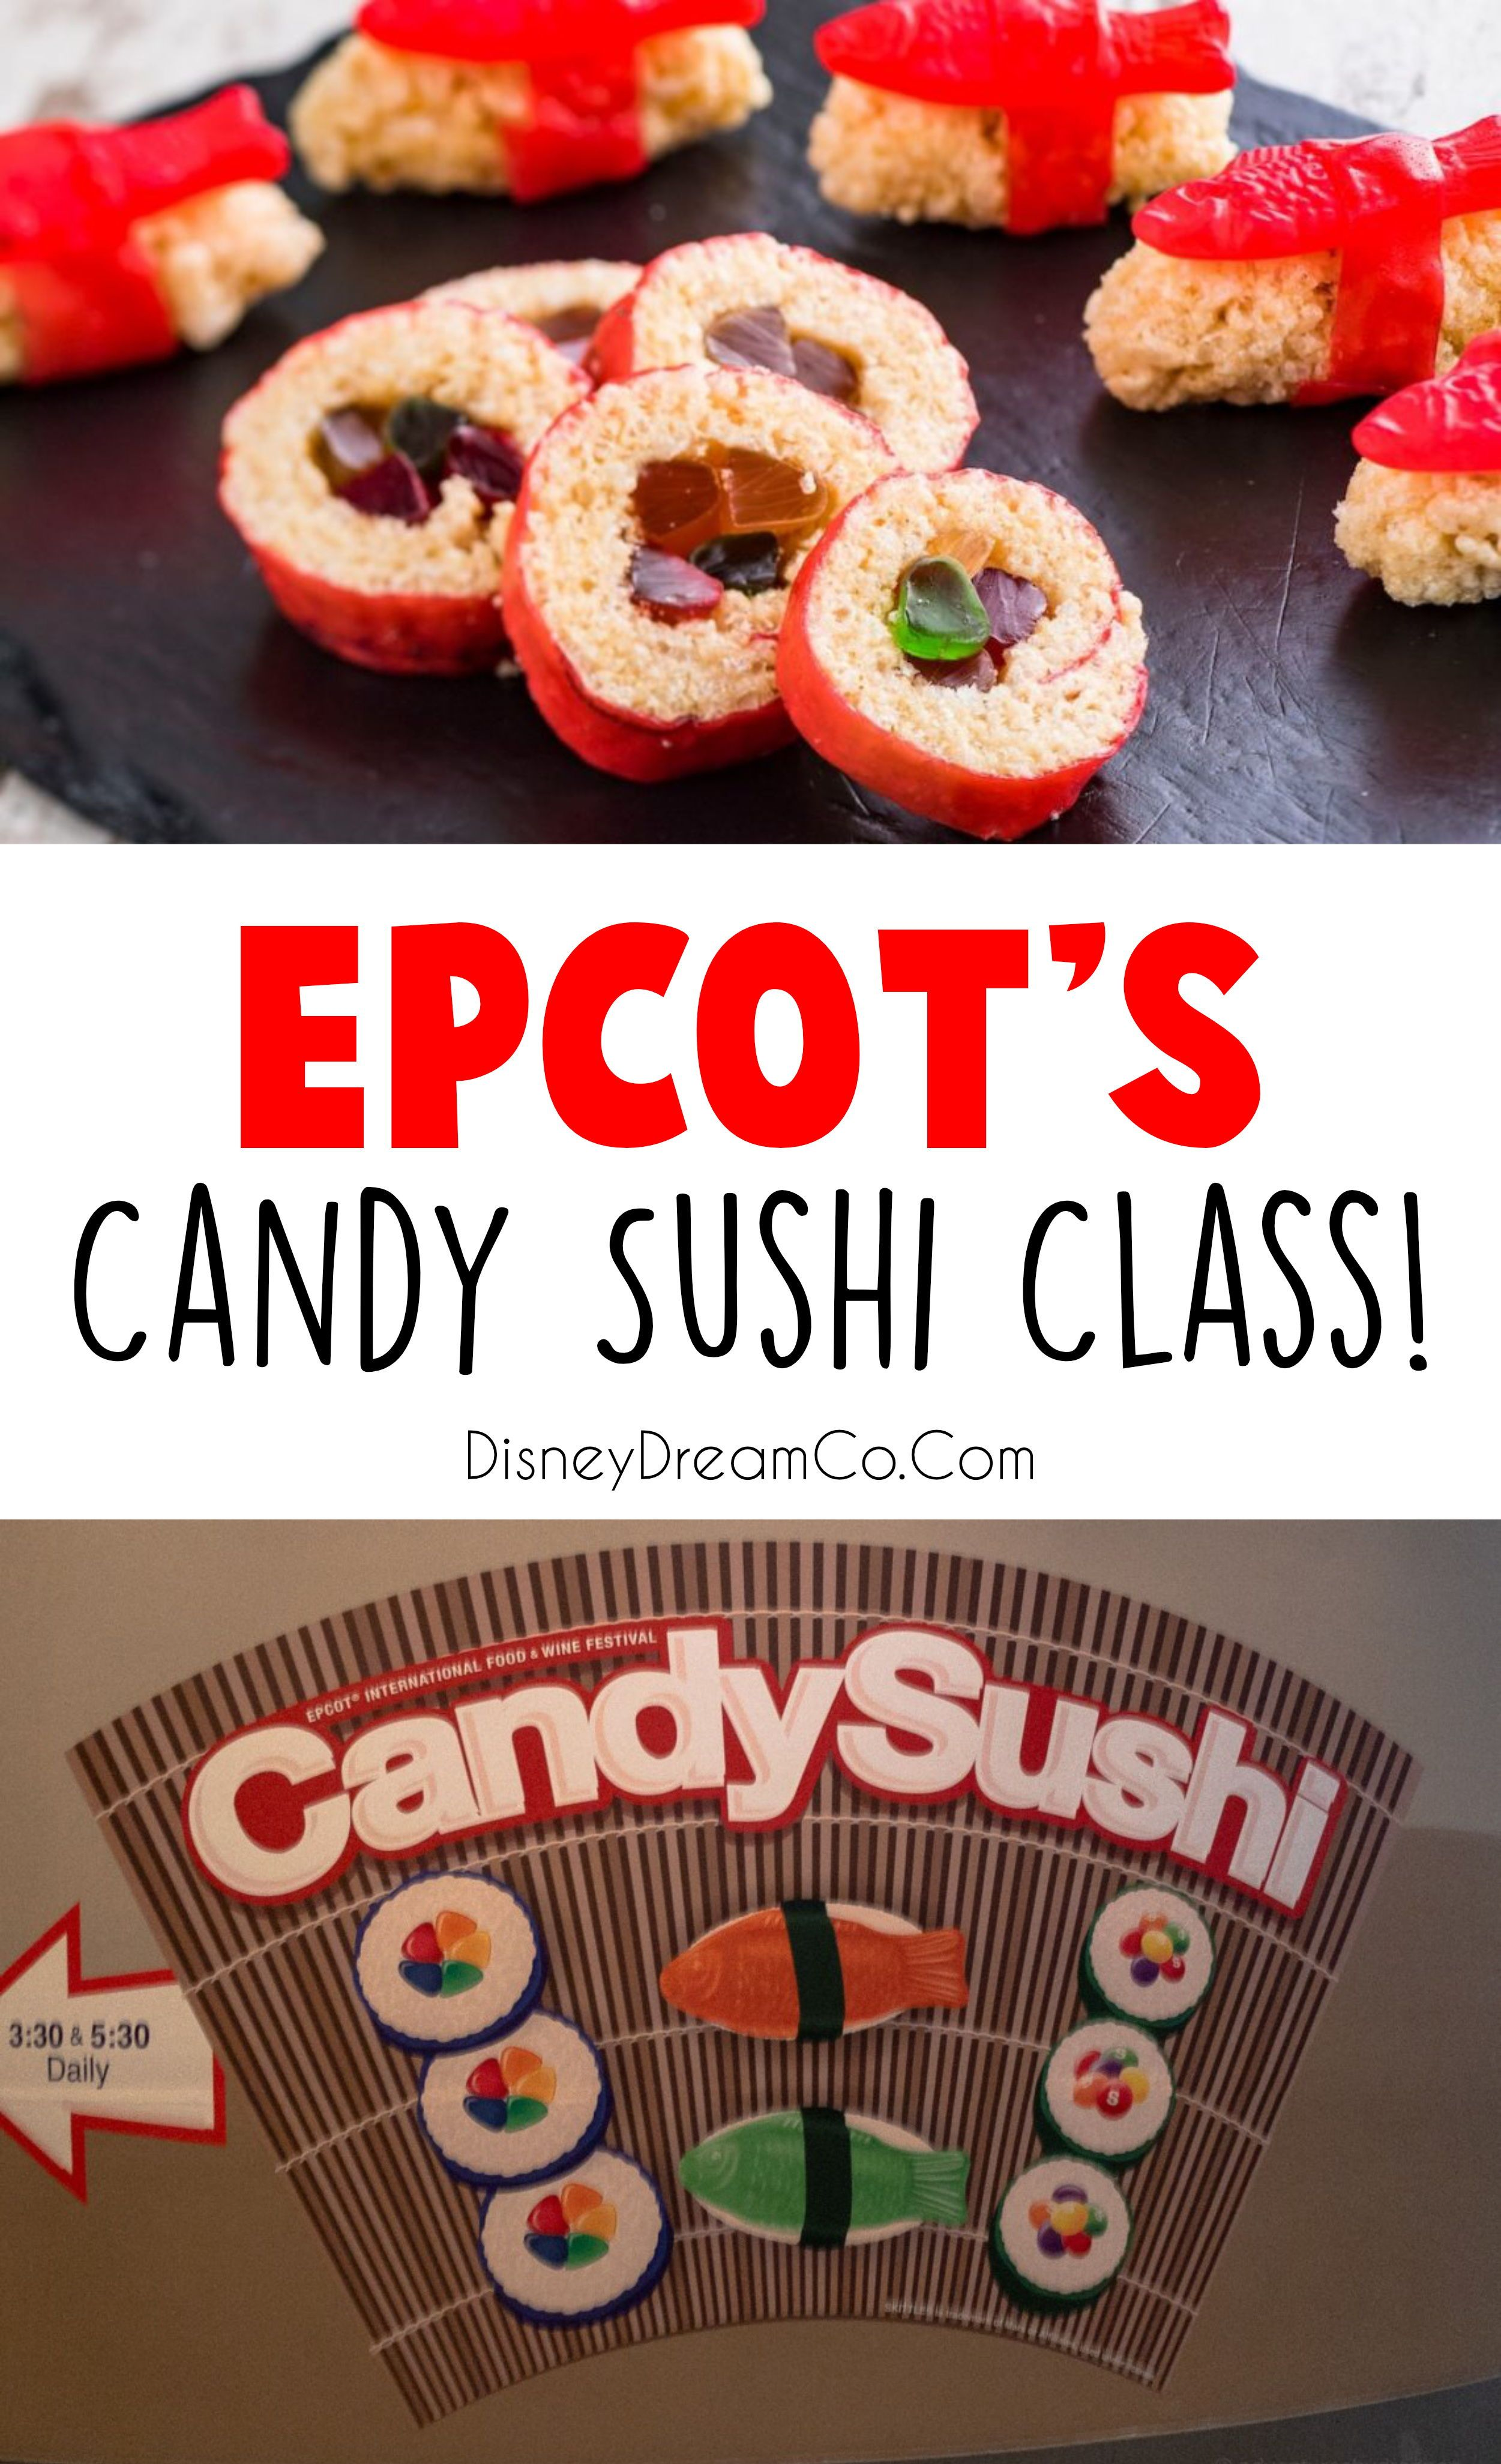 At Epcot S Food And Wine Festival There Is This Super Fun Candy Sushi Class Check Out This Review Disney Disneywo Candy Sushi Epcot Food Disney World Food